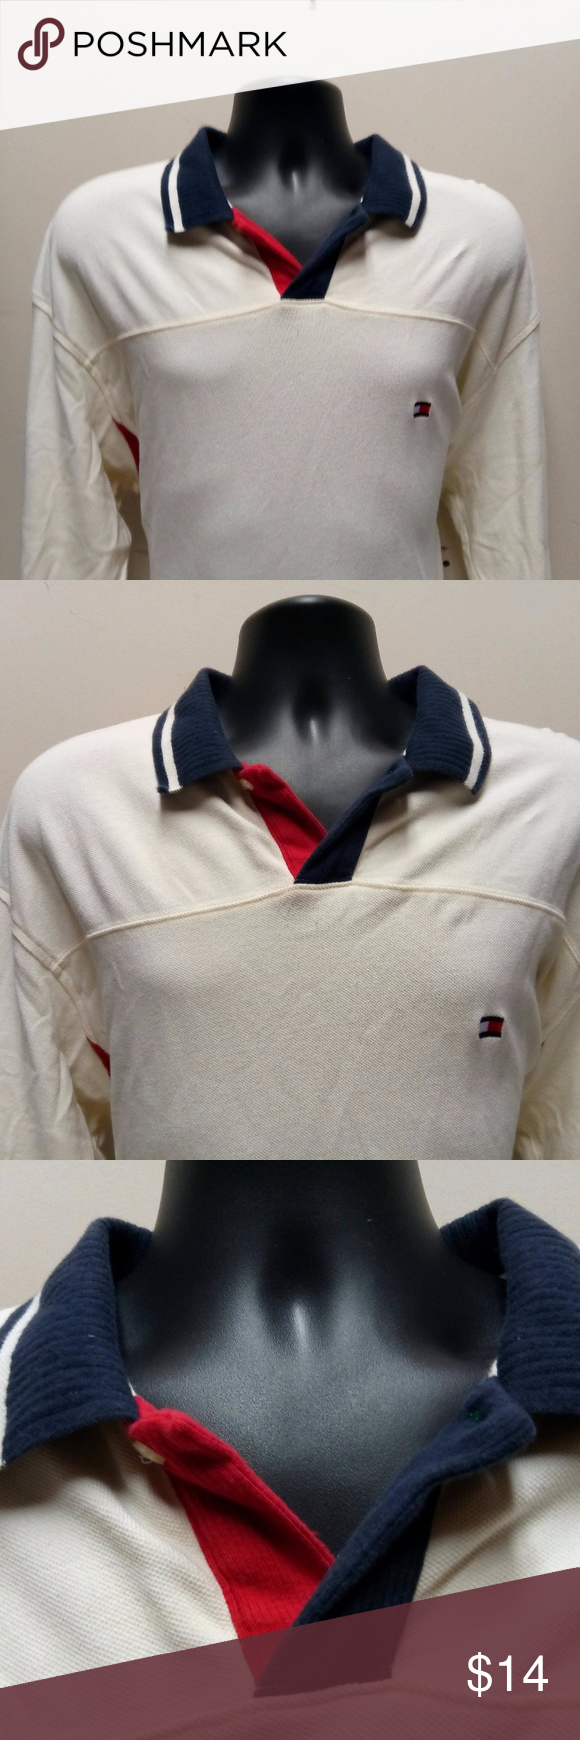 Tommy Hilfiger Vintage Mens Polo SIze XL Flag Long Sleeve VIntage Tommy Hilifiger Polo- In good preloved condition Tommy Hilfiger Shirts Polos